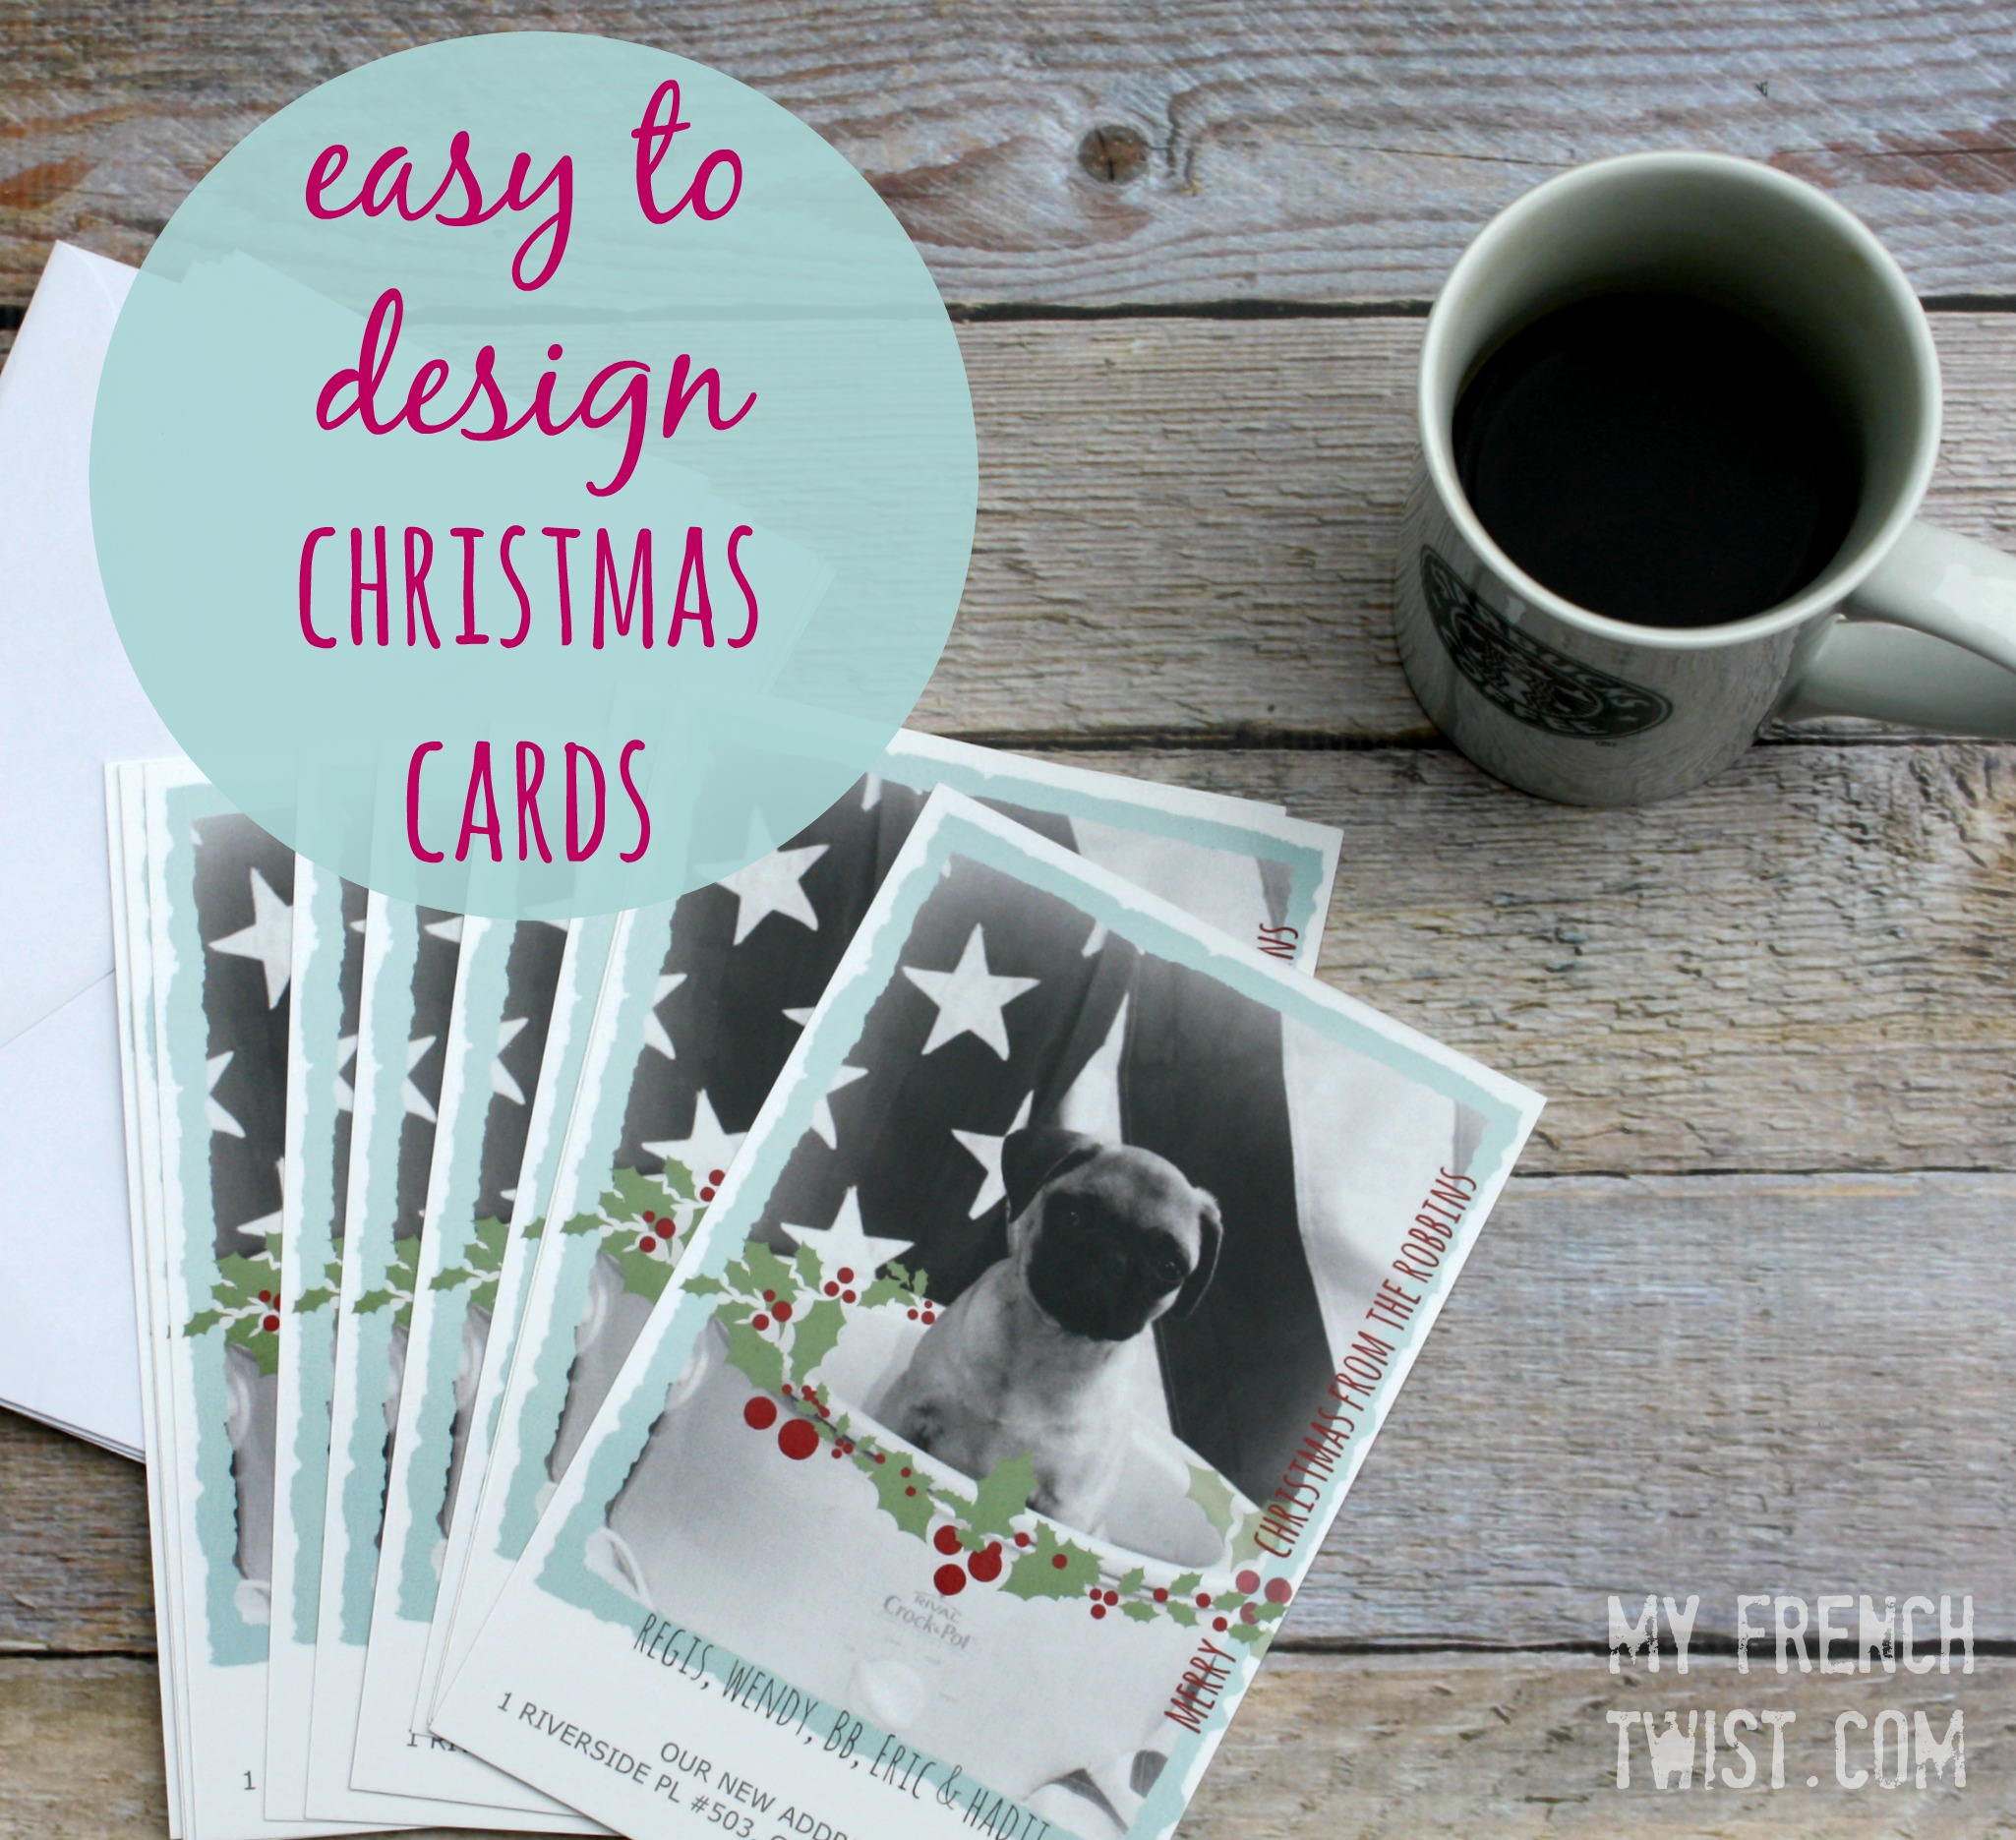 Genial Vistaprint My French Twist Vistaprint Card Sale Vistaprint Cards Discount Make Your Own Holiday Cards Vistaprint Make Your Own Holiday Cards cards Vistaprint Christmas Cards